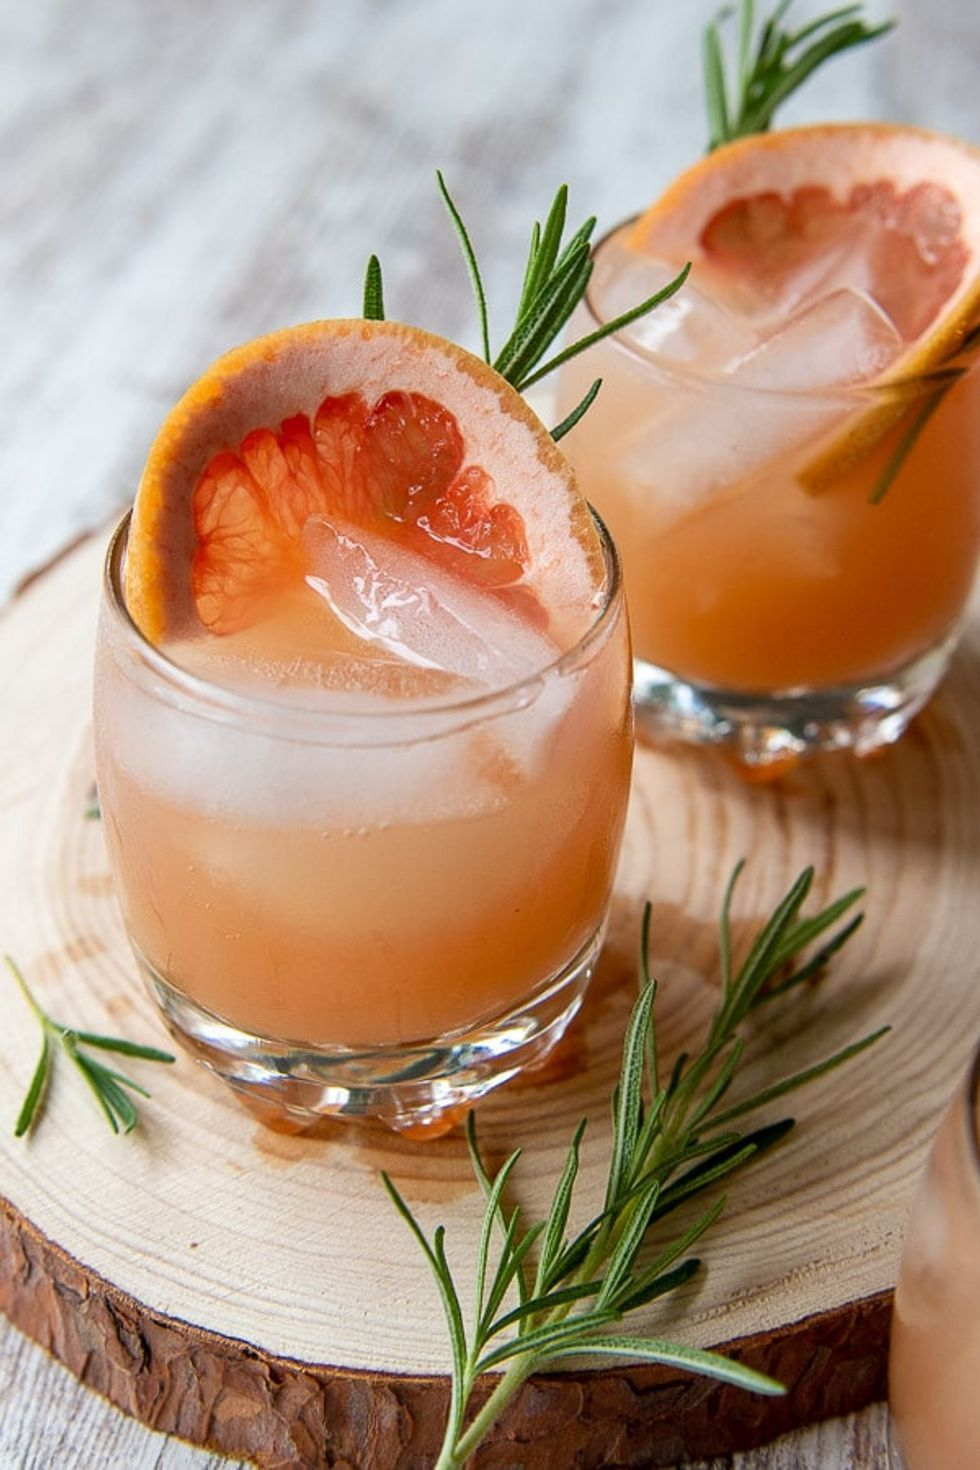 Sparkling Grapefruit Vodka Cocktail Recipe |Refreshing Grapefruit Cocktail #grapefruitcocktail